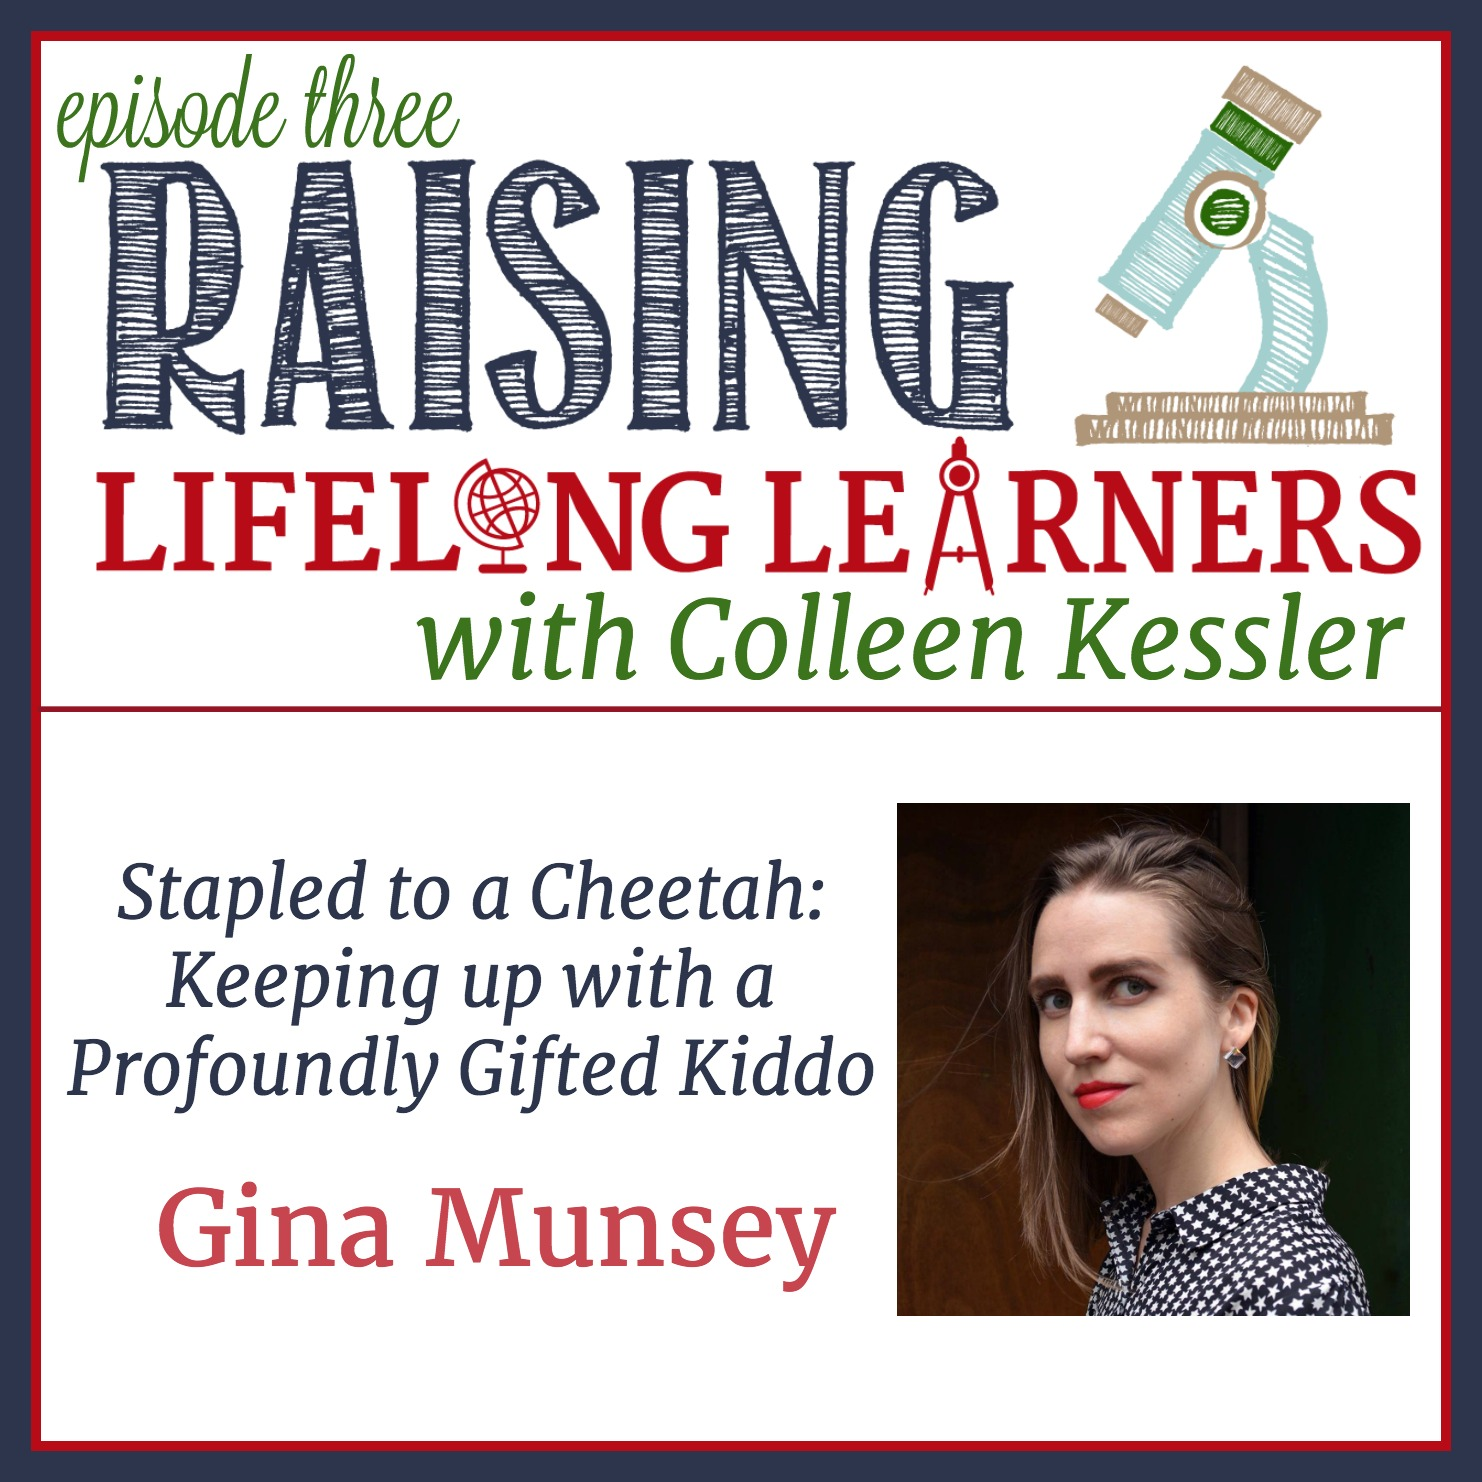 RLL Episode Three - Gina Munsey - Stapled to a Cheetah - Keeping Up With a Profoundly Gifted Kiddo